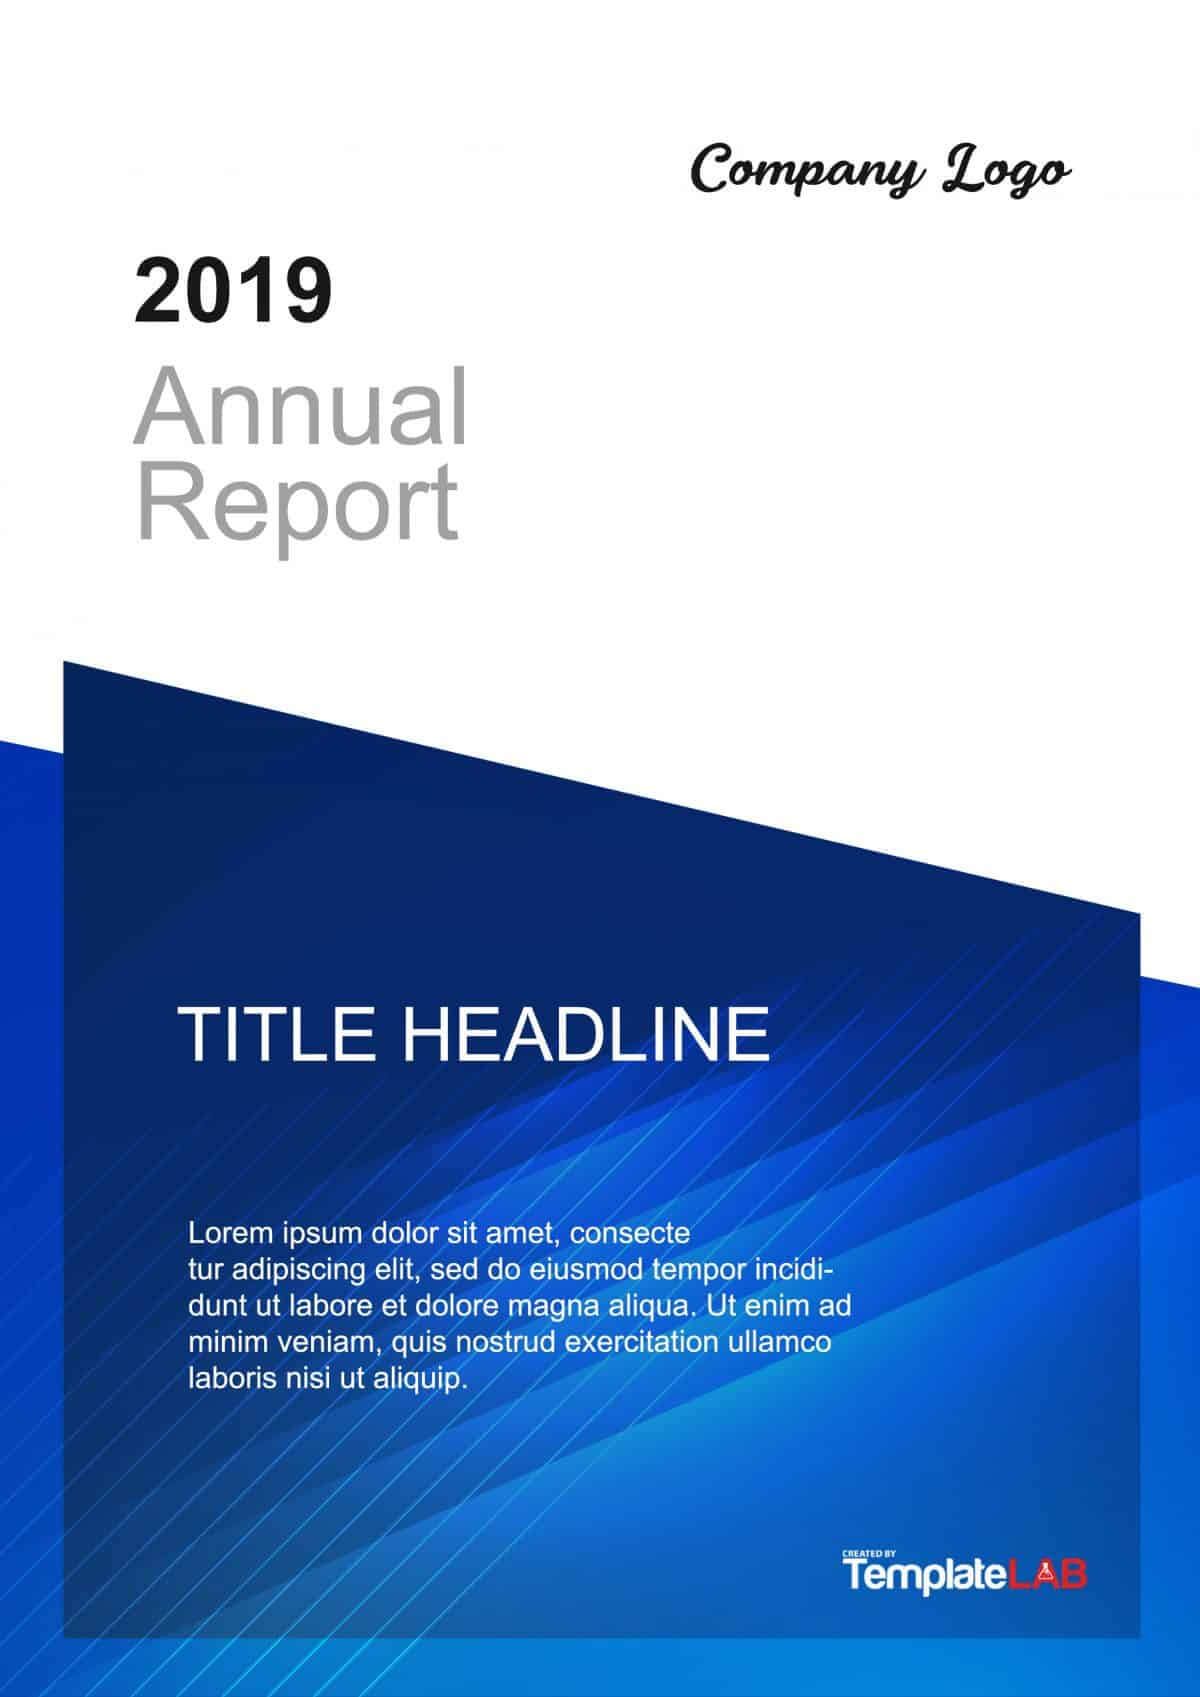 001 Template Ideas Report Cover Page Templatelab inside Cover Page Of Report Template In Word